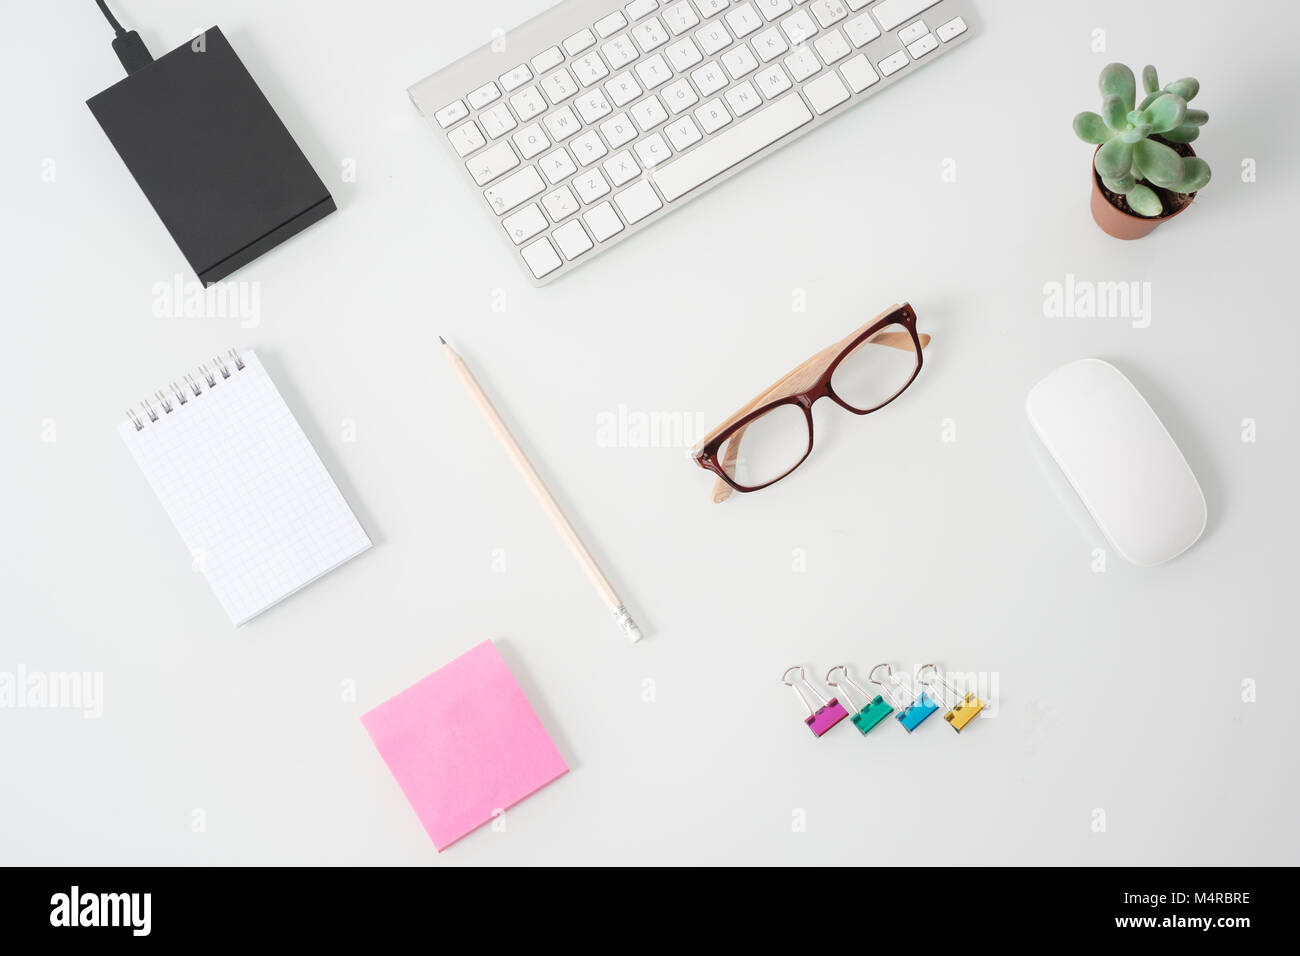 Modern office work desktop and sparse objects - Stock Image